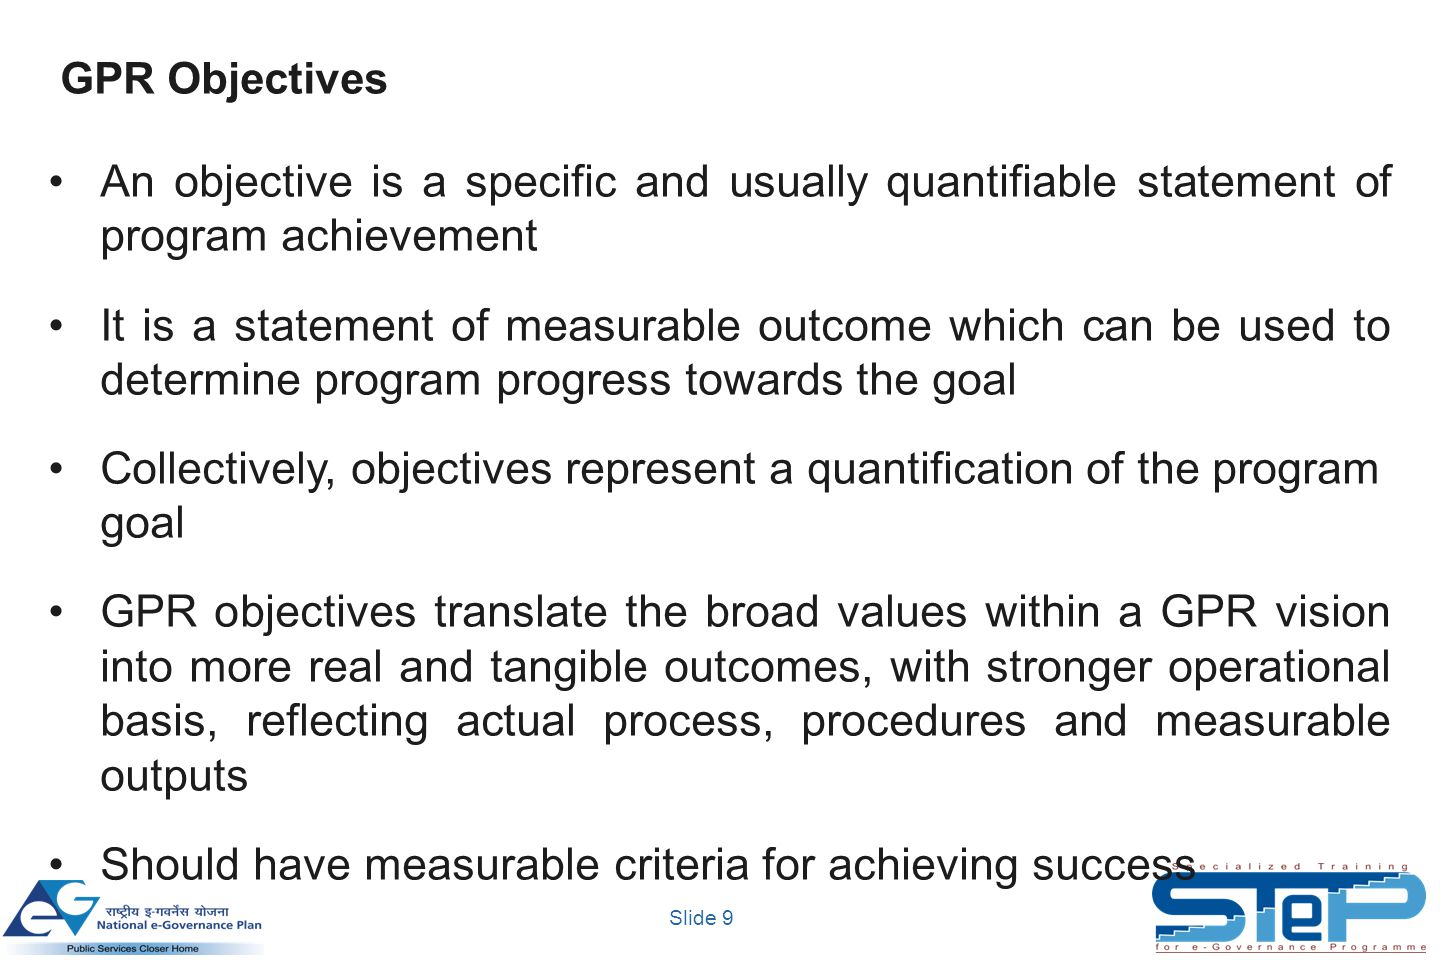 Slide 9 An objective is a specific and usually quantifiable statement of program achievement It is a statement of measurable outcome which can be used to determine program progress towards the goal Collectively, objectives represent a quantification of the program goal GPR objectives translate the broad values within a GPR vision into more real and tangible outcomes, with stronger operational basis, reflecting actual process, procedures and measurable outputs Should have measurable criteria for achieving success GPR Objectives